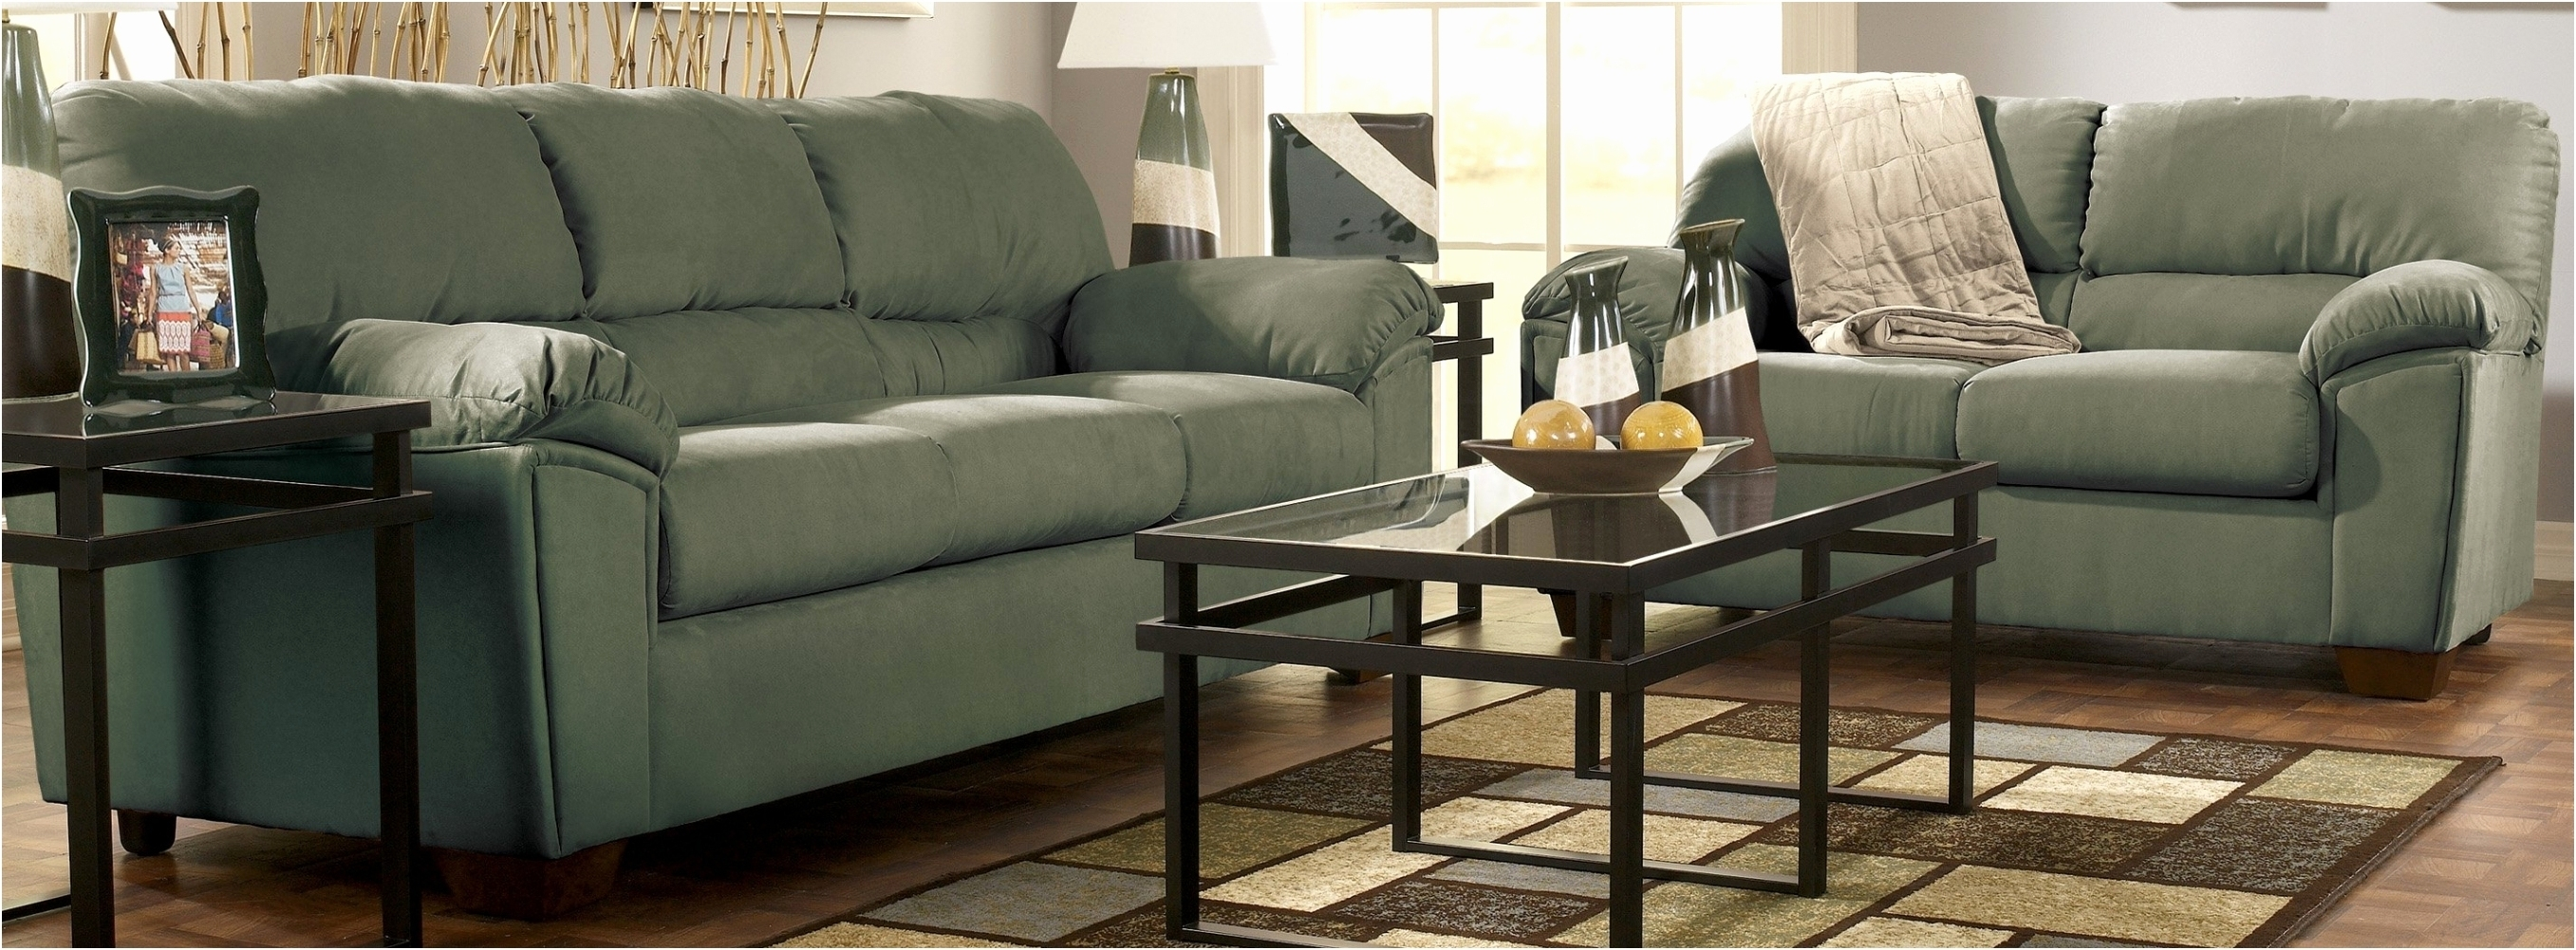 Extraordinary Affordable Living Room Sets Cheap For With Sleeper for Kitchener Sectional Sofas (Image 4 of 10)